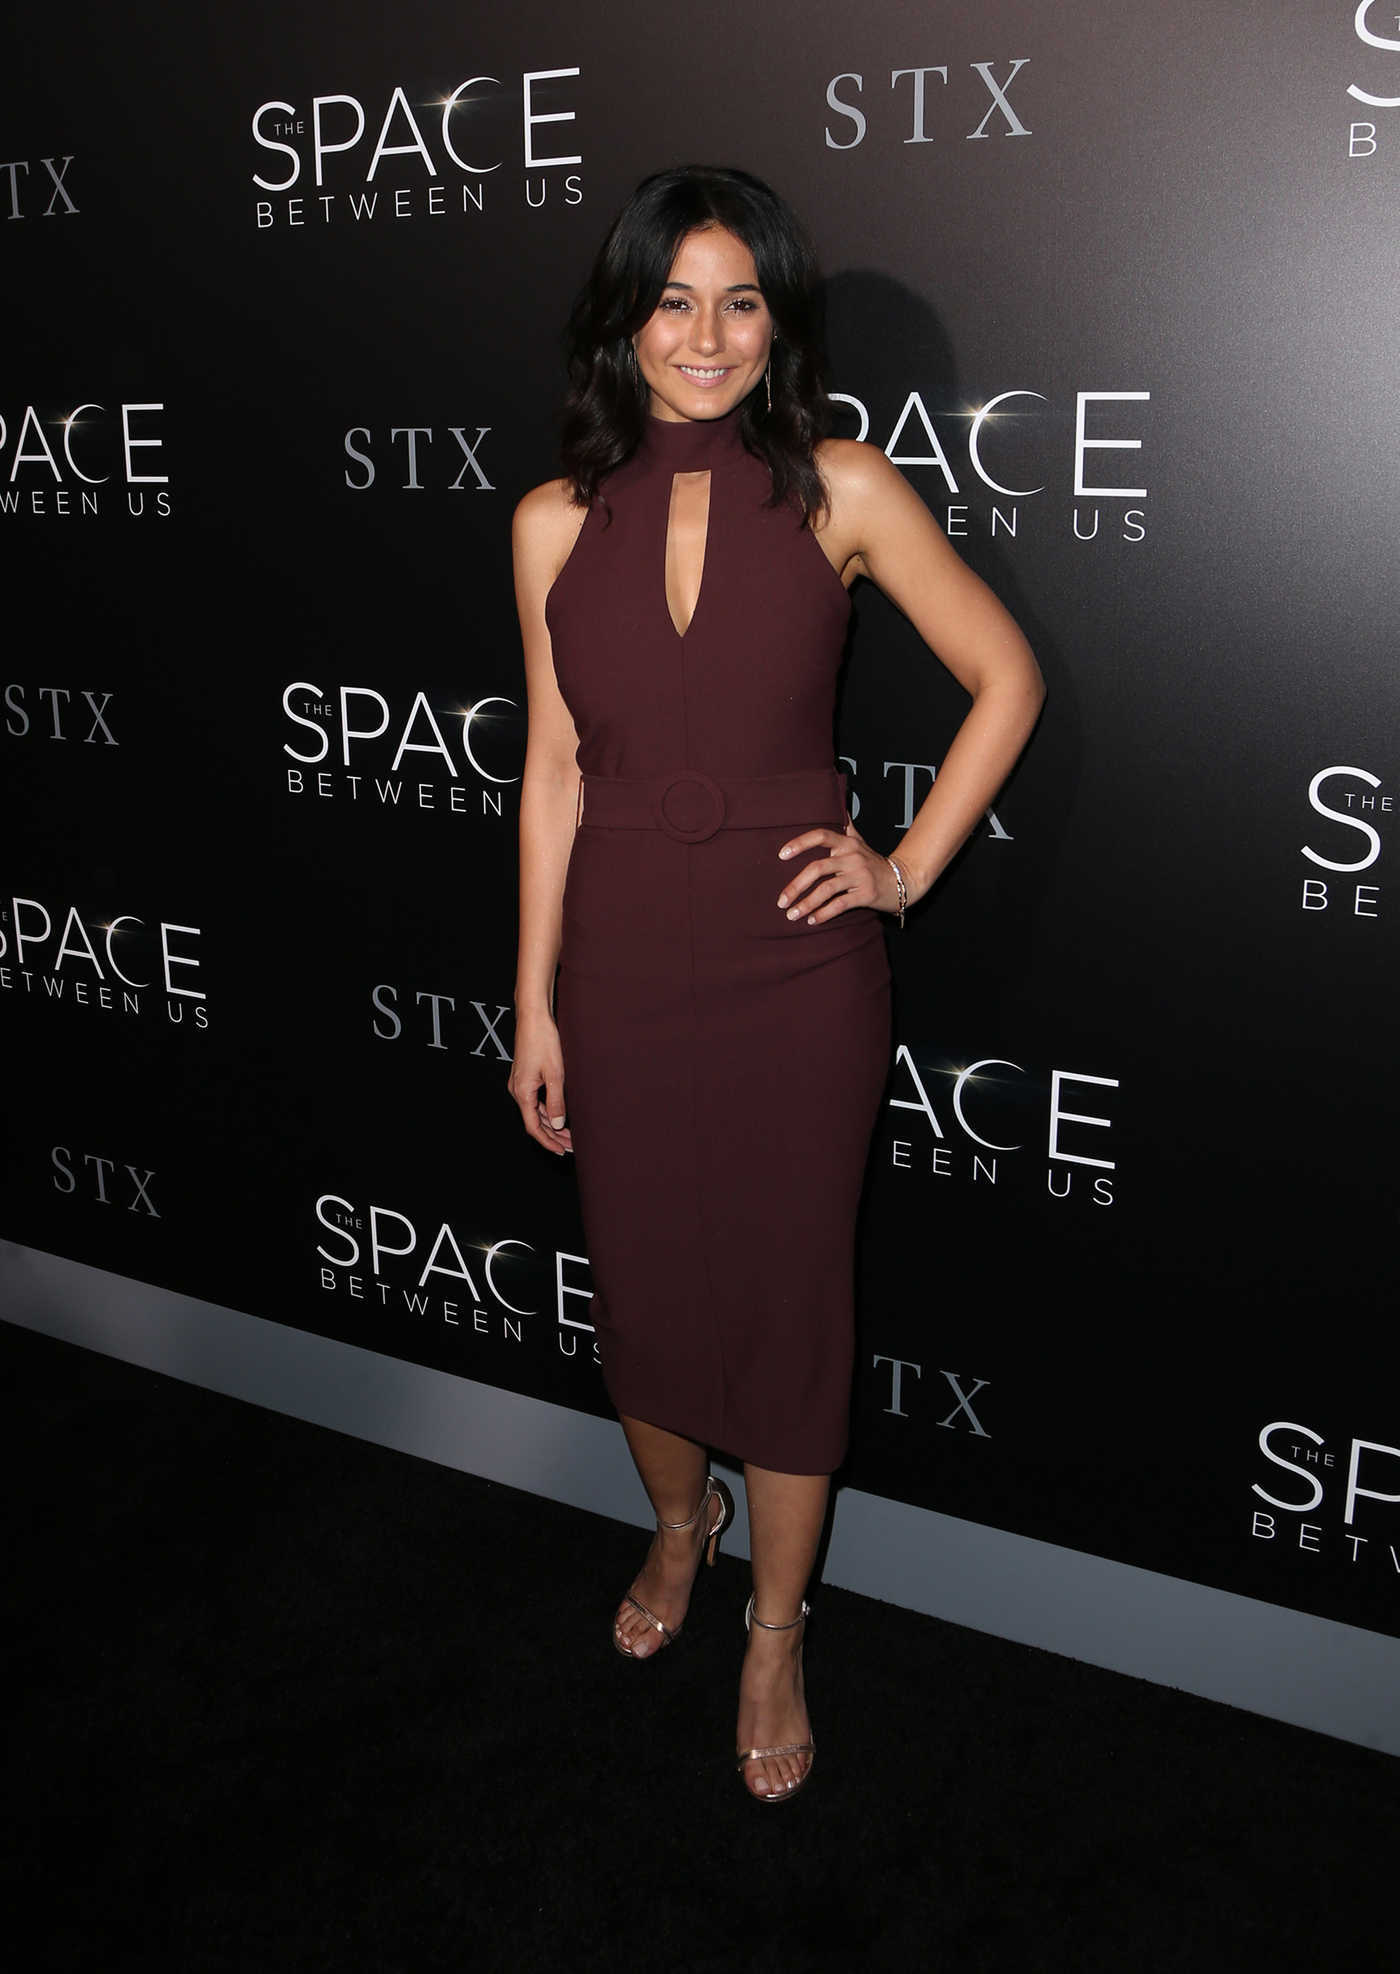 Emmanuelle Chriqui at The Space Between Us Premiere in Los Angeles 01/17/2017